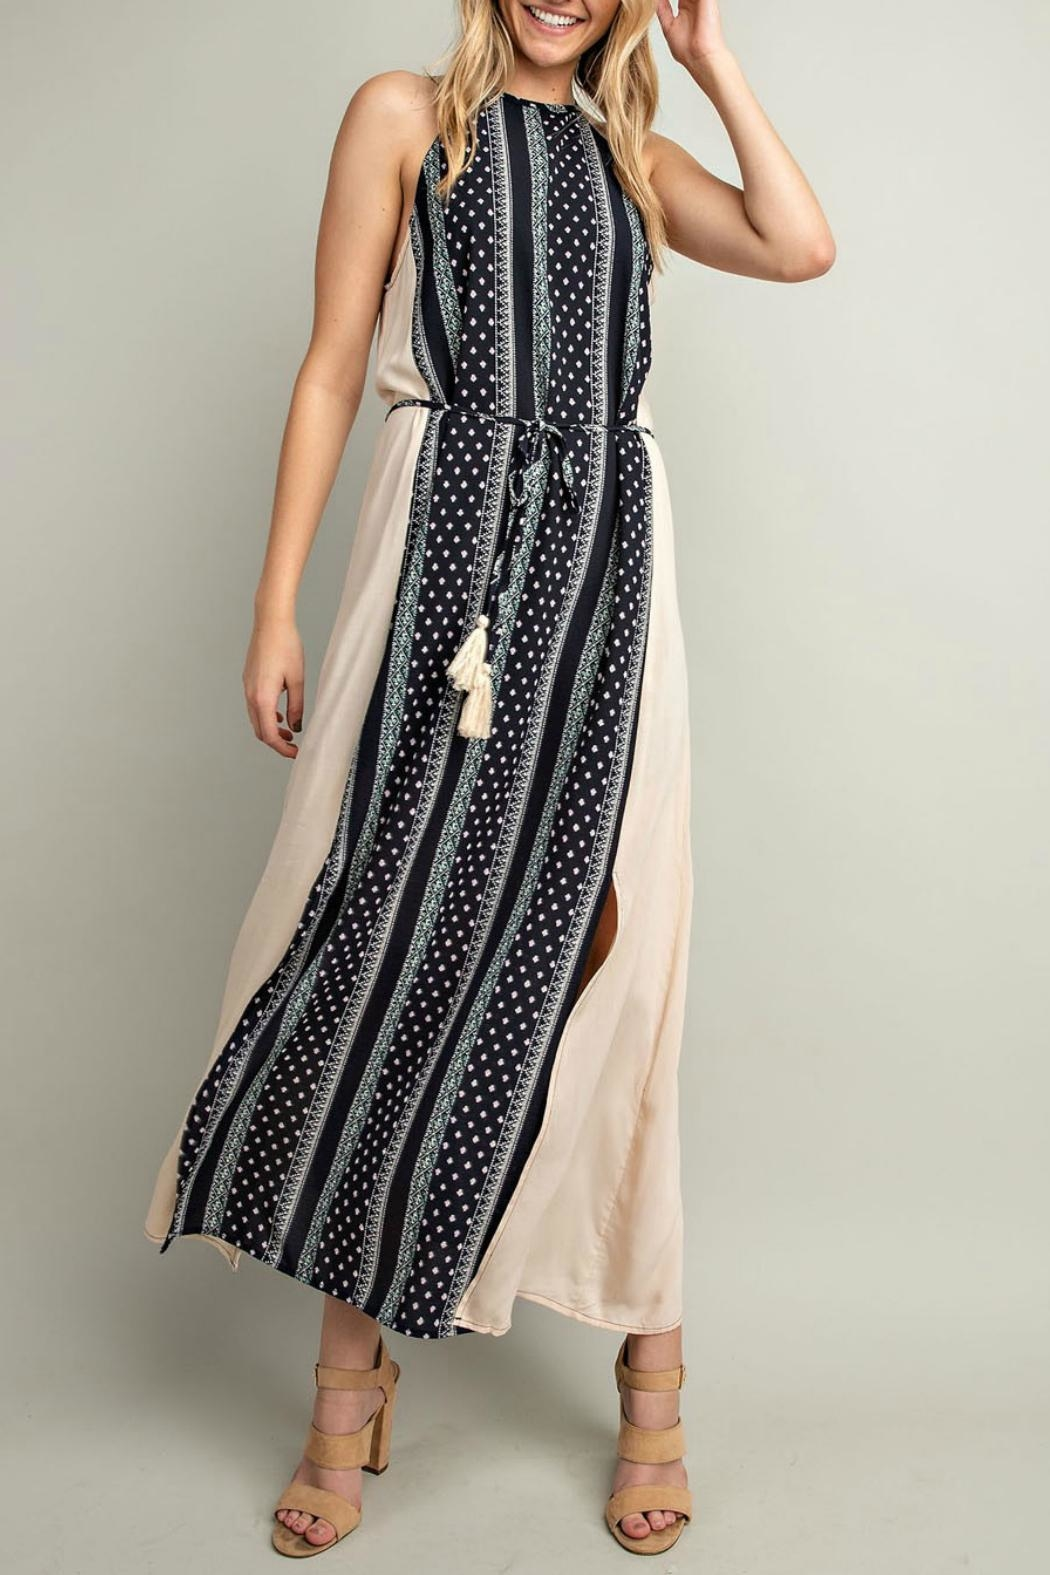 LLove USA Navy Halter Dress - Main Image